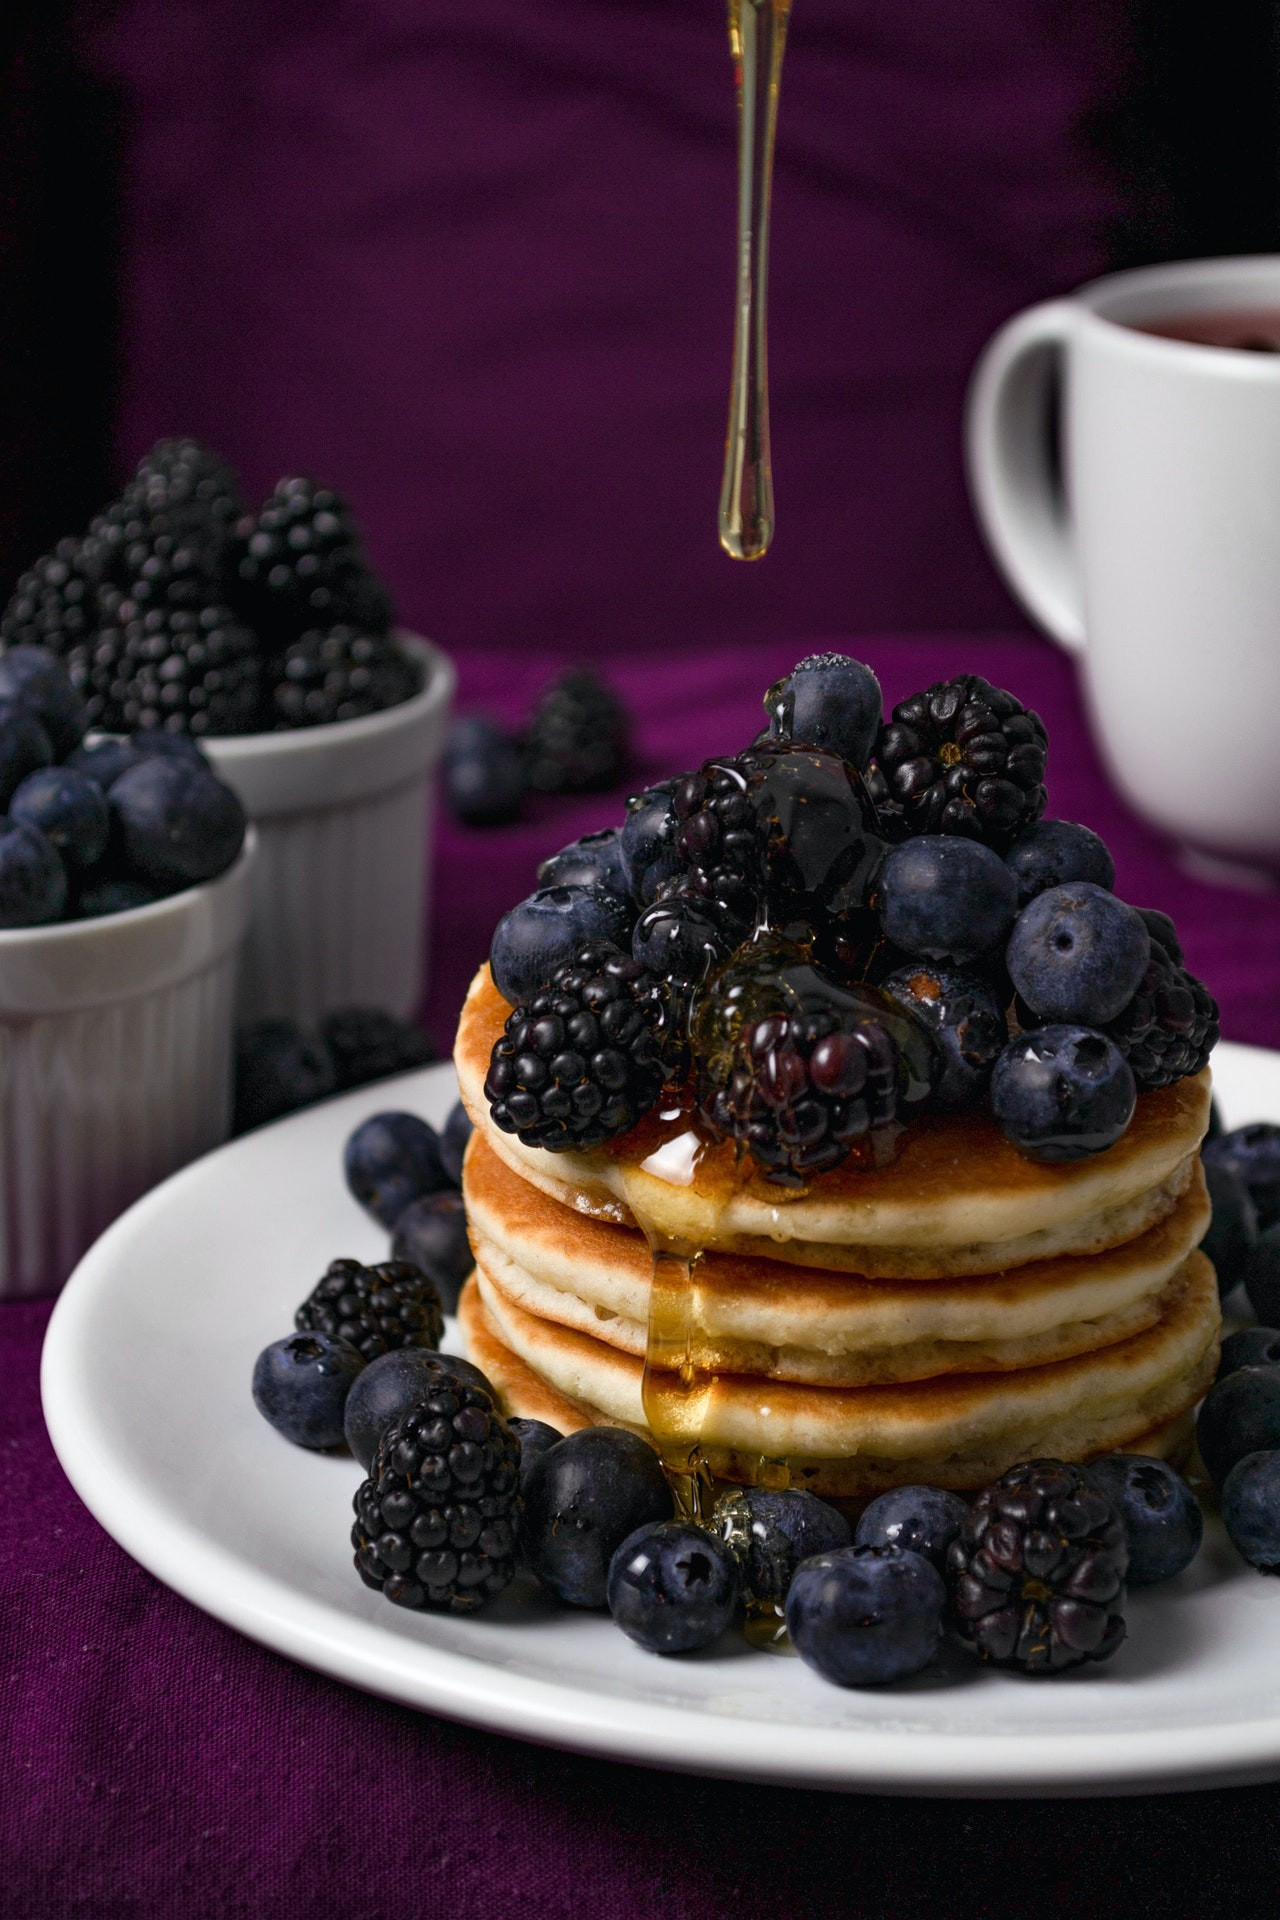 Eat a Healthy Breakfast